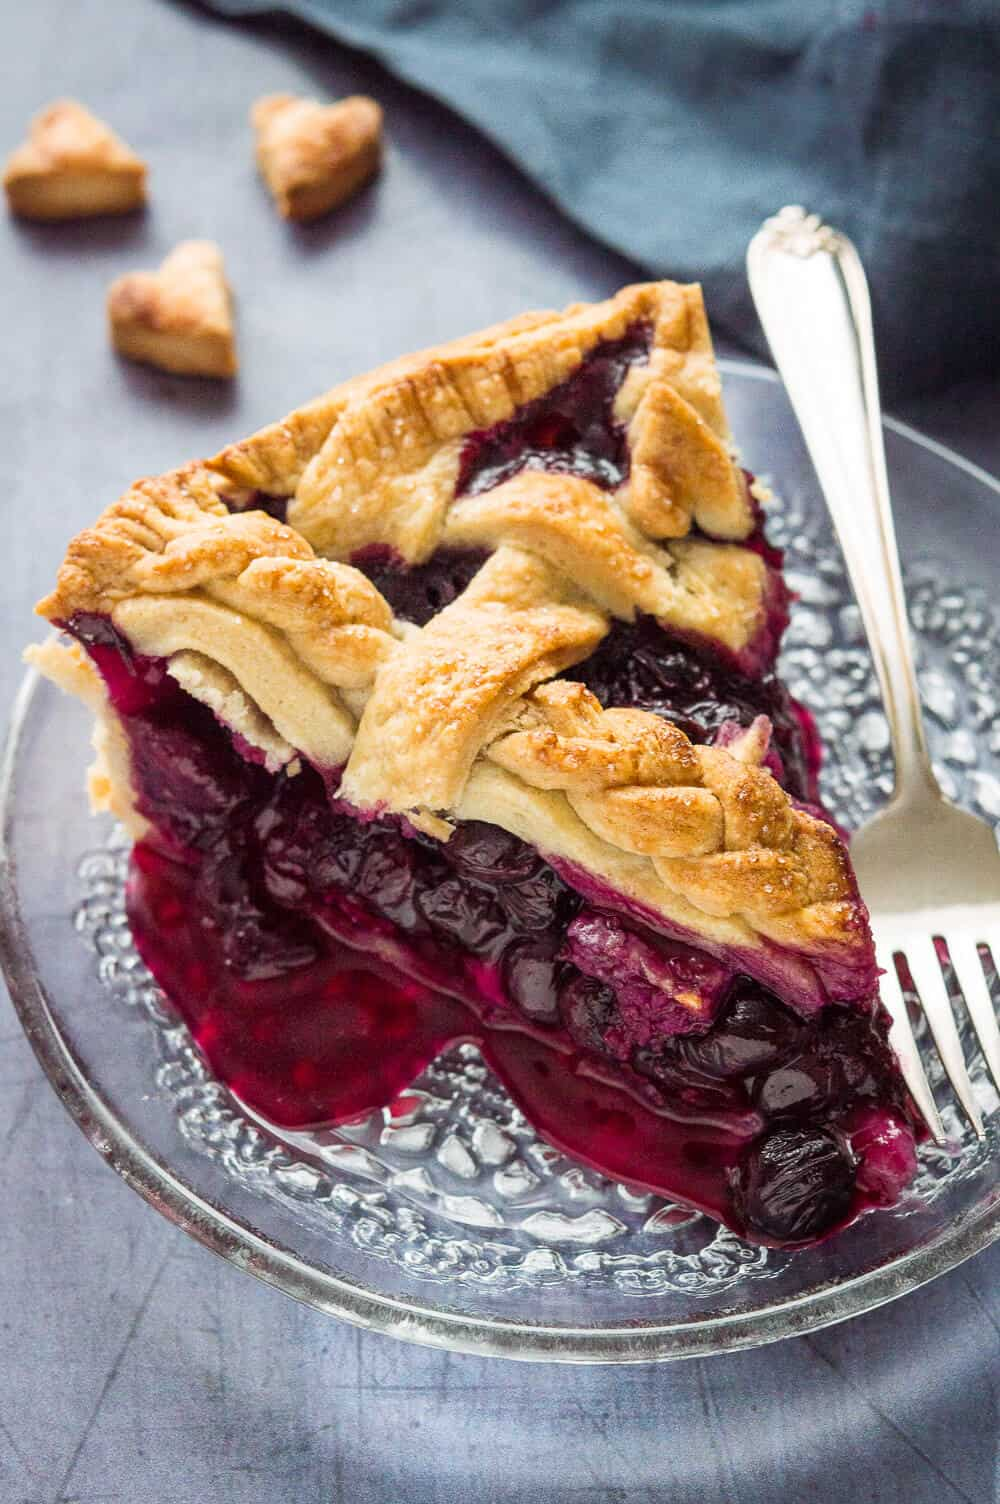 A side shot of a slice of lattice topped blueberry pie made with vegan coconut oil pastry.